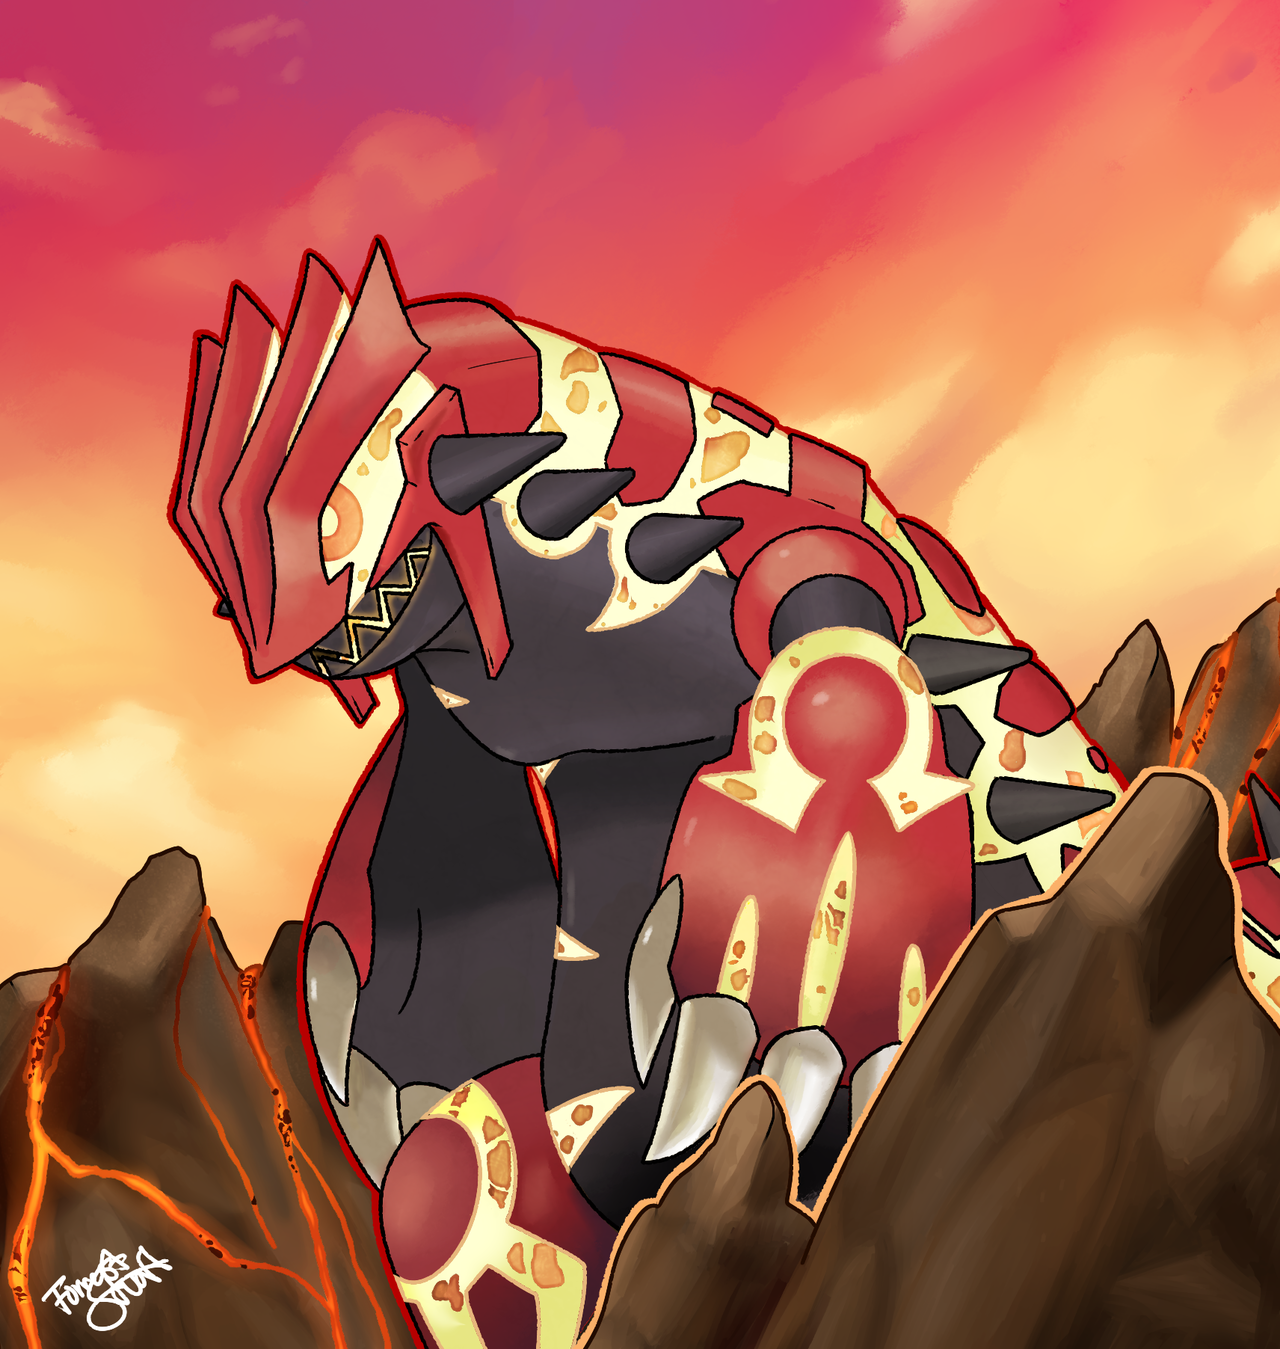 Rayquaza レックウザ Rekkūza r eɪ ˈ k w eɪ z ə is a Pokémon species in Nintendo and Game Freaks Pokémon franchise appearing in Pokémon Ruby and